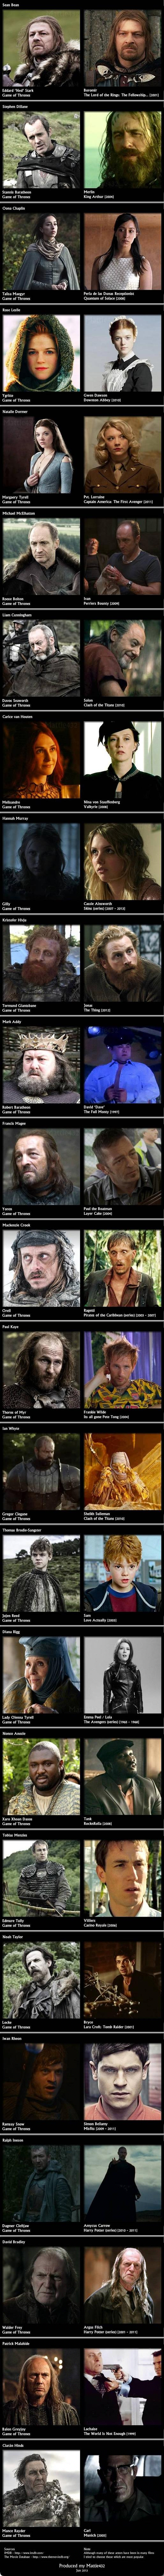 Game Of Thrones Actors